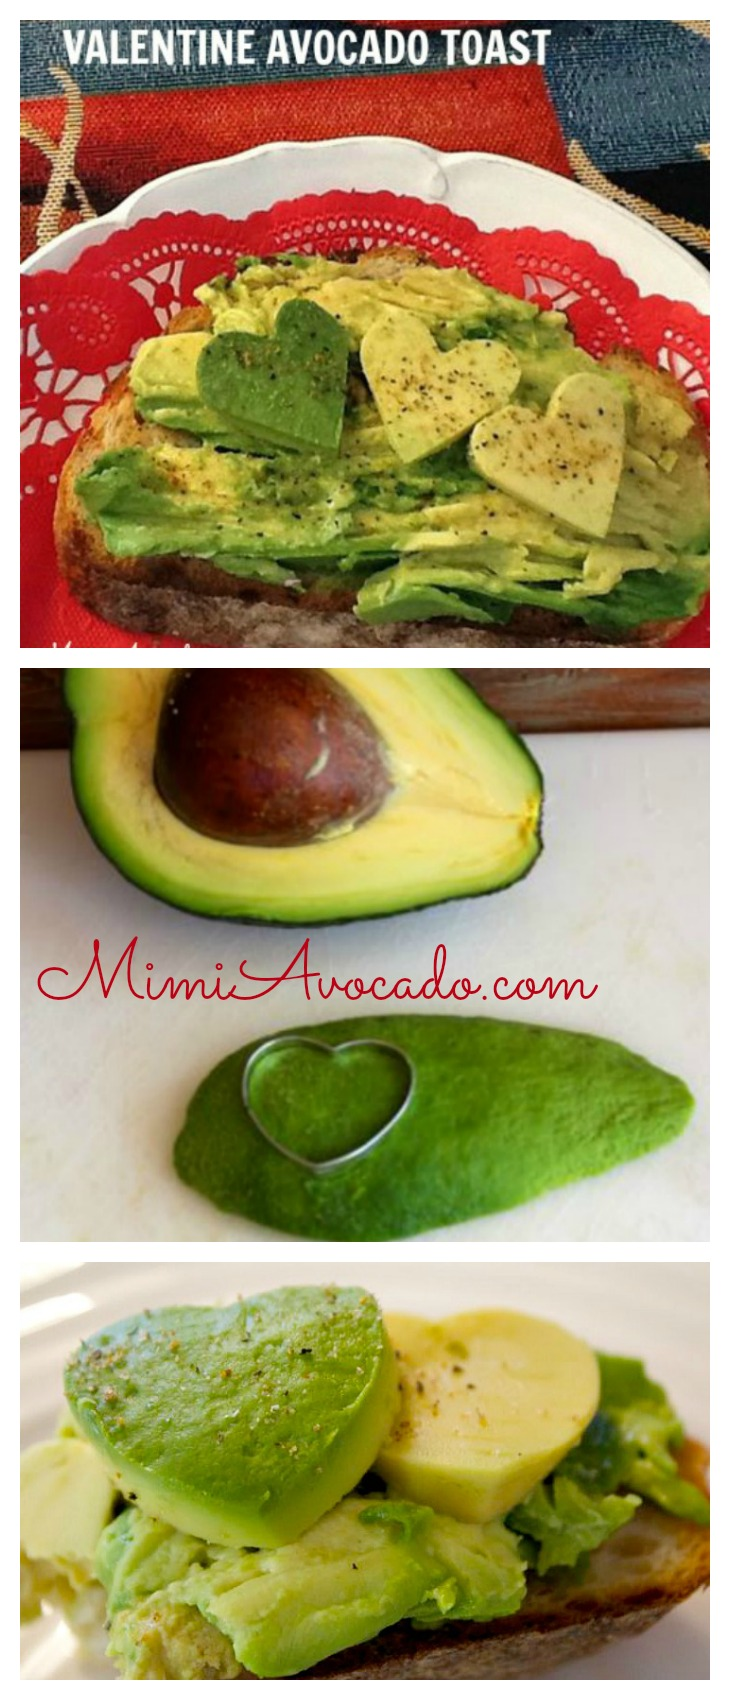 Avocado Hearts for Pinterest